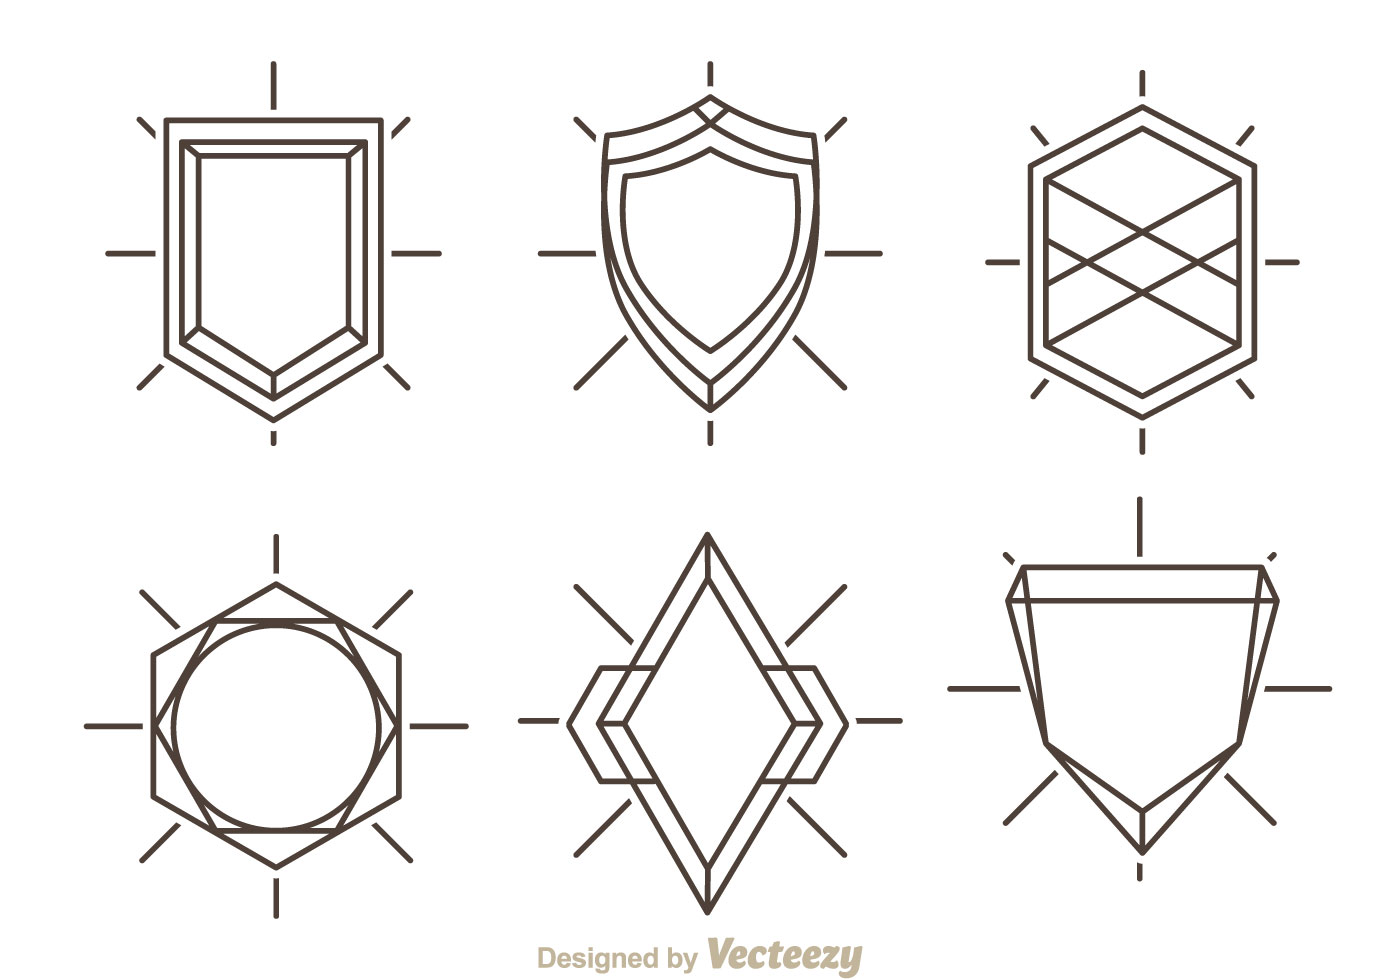 Outline Shield Shape - Download Free Vector Art, Stock Graphics & Images